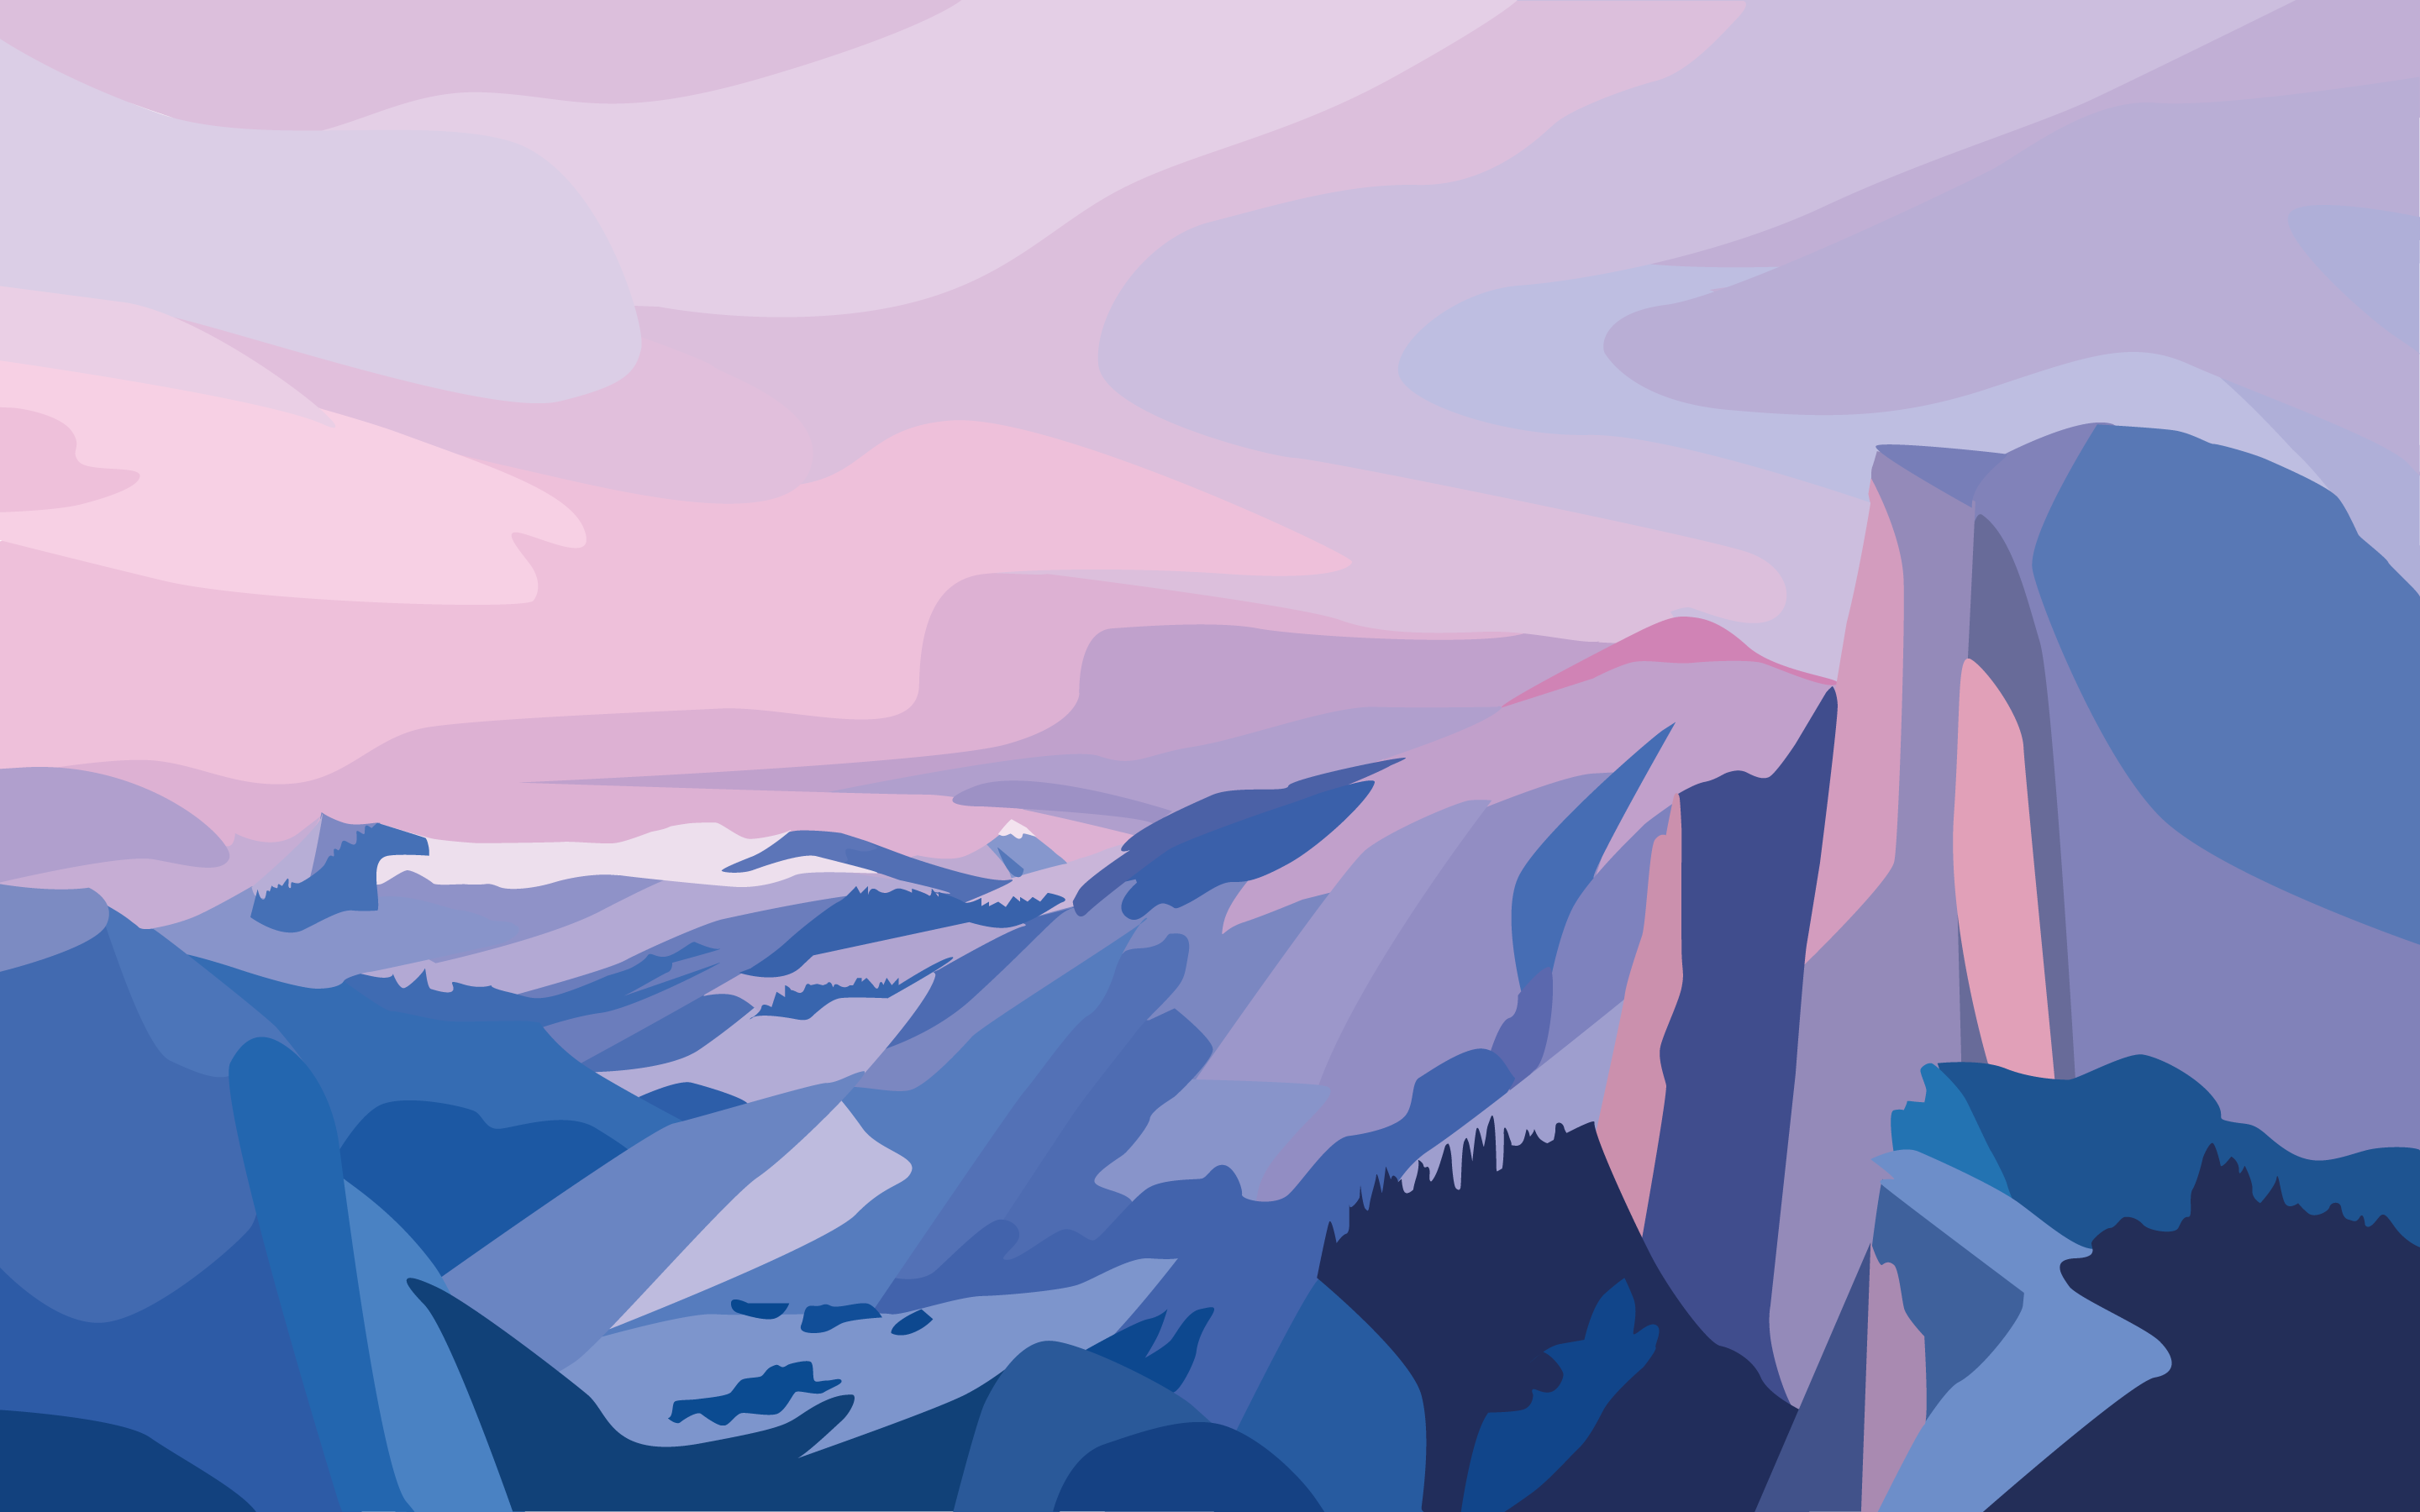 Violet Mountains 2880 X 1800 Hq Backgrounds Hd Wallpapers Gallery Gallsourc Desktop Wallpaper Art Minimalist Desktop Wallpaper Desktop Wallpaper Macbook